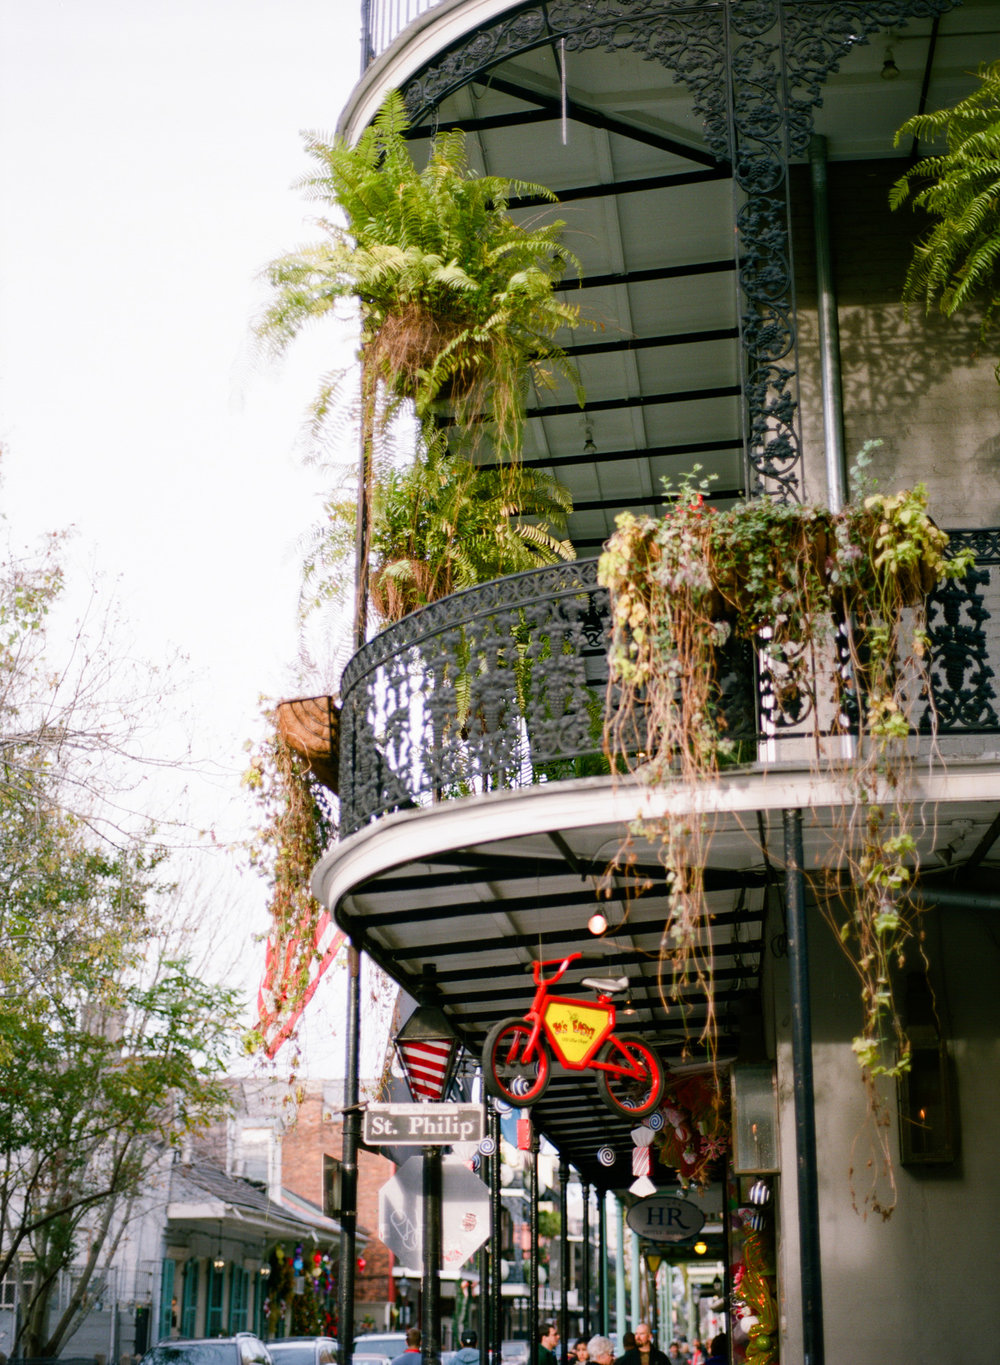 NEWORLEANS2013_©kristinmyoung_SquareLORes-12.jpg